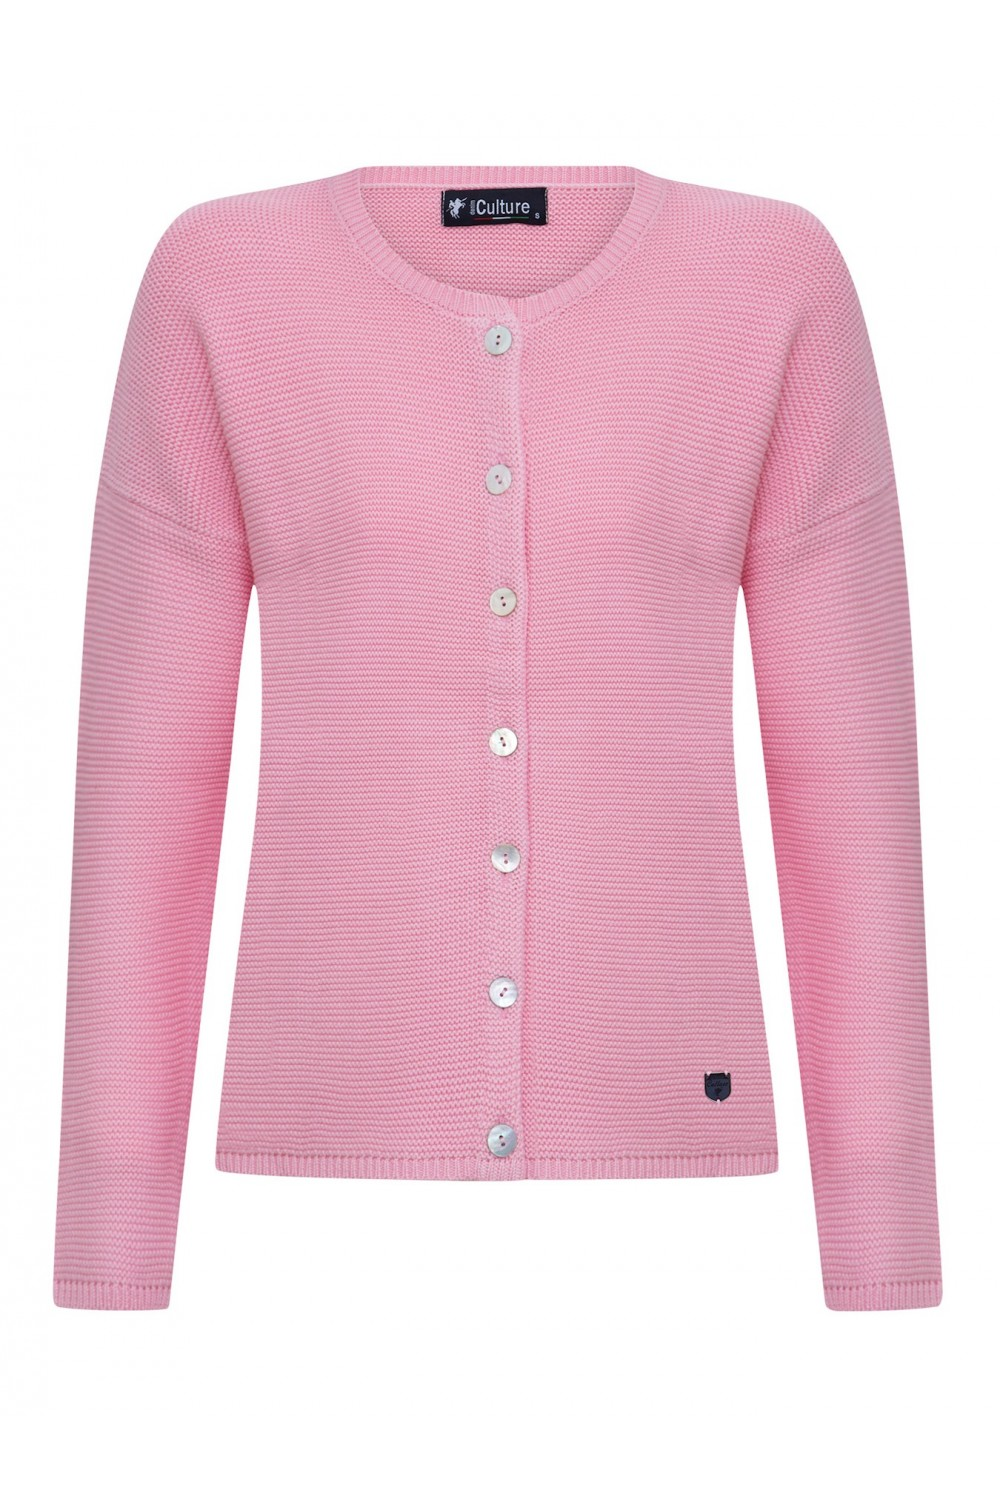 Women's Cardigan Button Crew Neck Pink